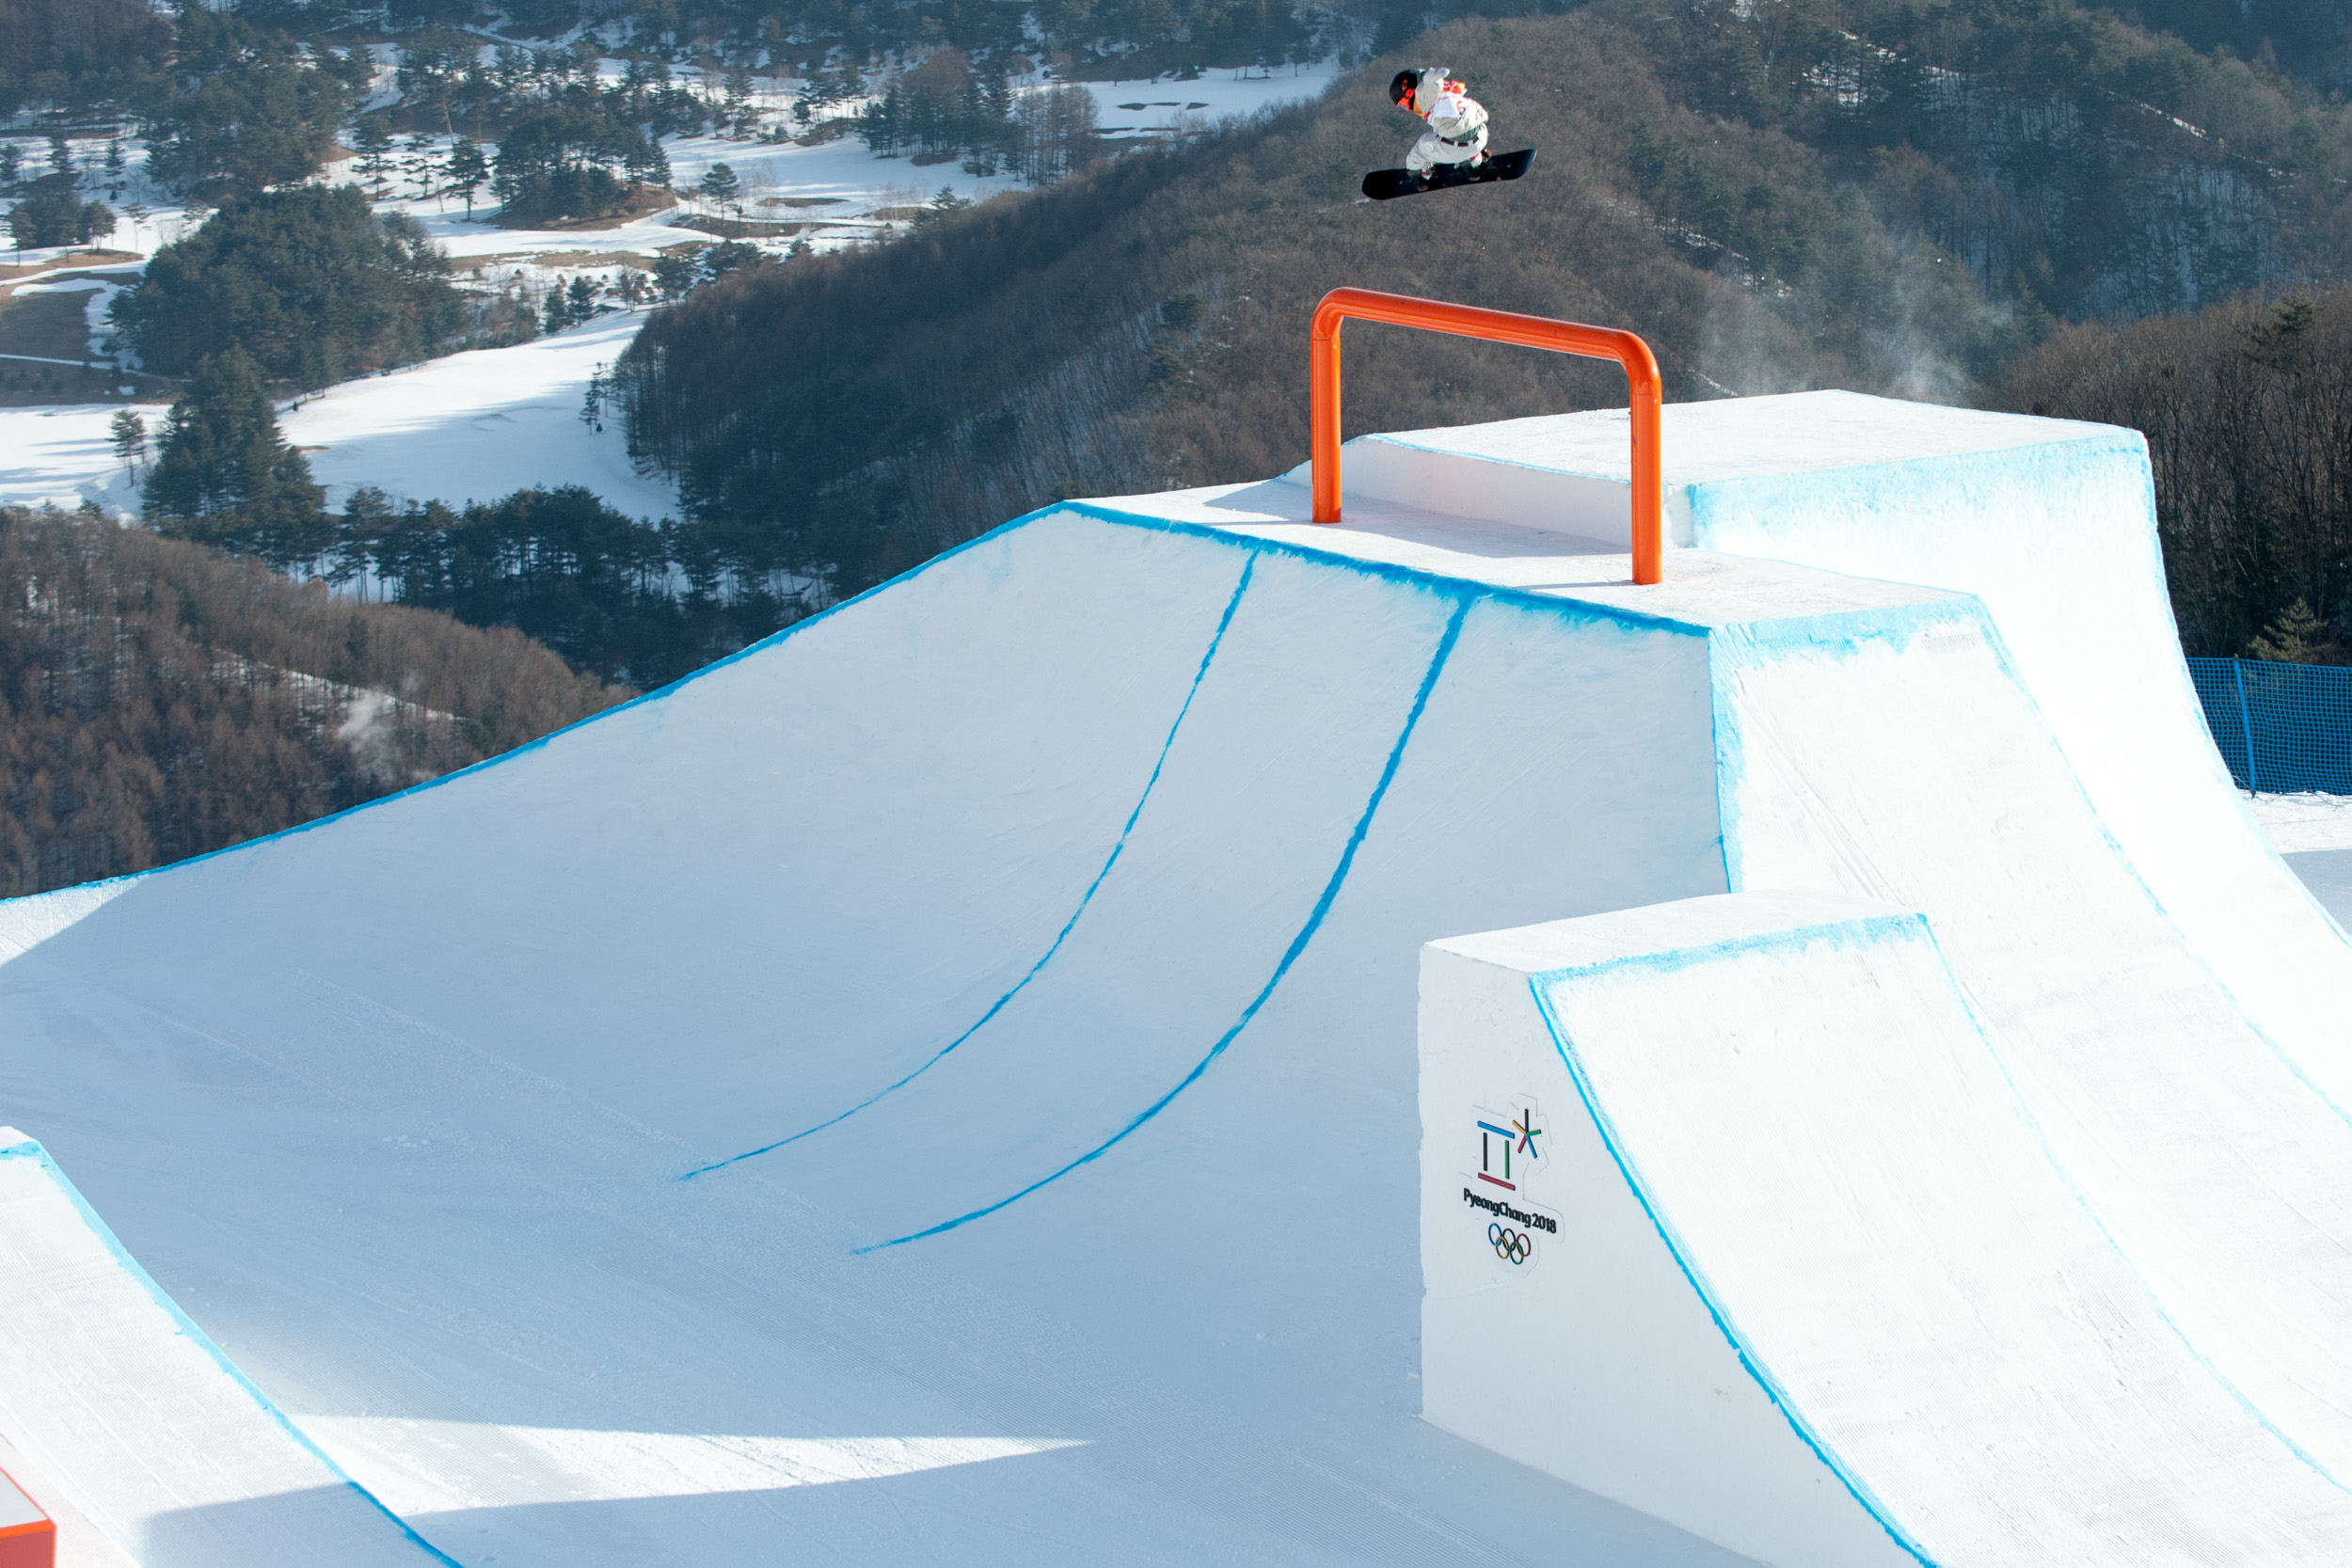 NewsAlert: Snowboarders Parrot and McMorris capture silver and bronze at Pyeongchang Olympics